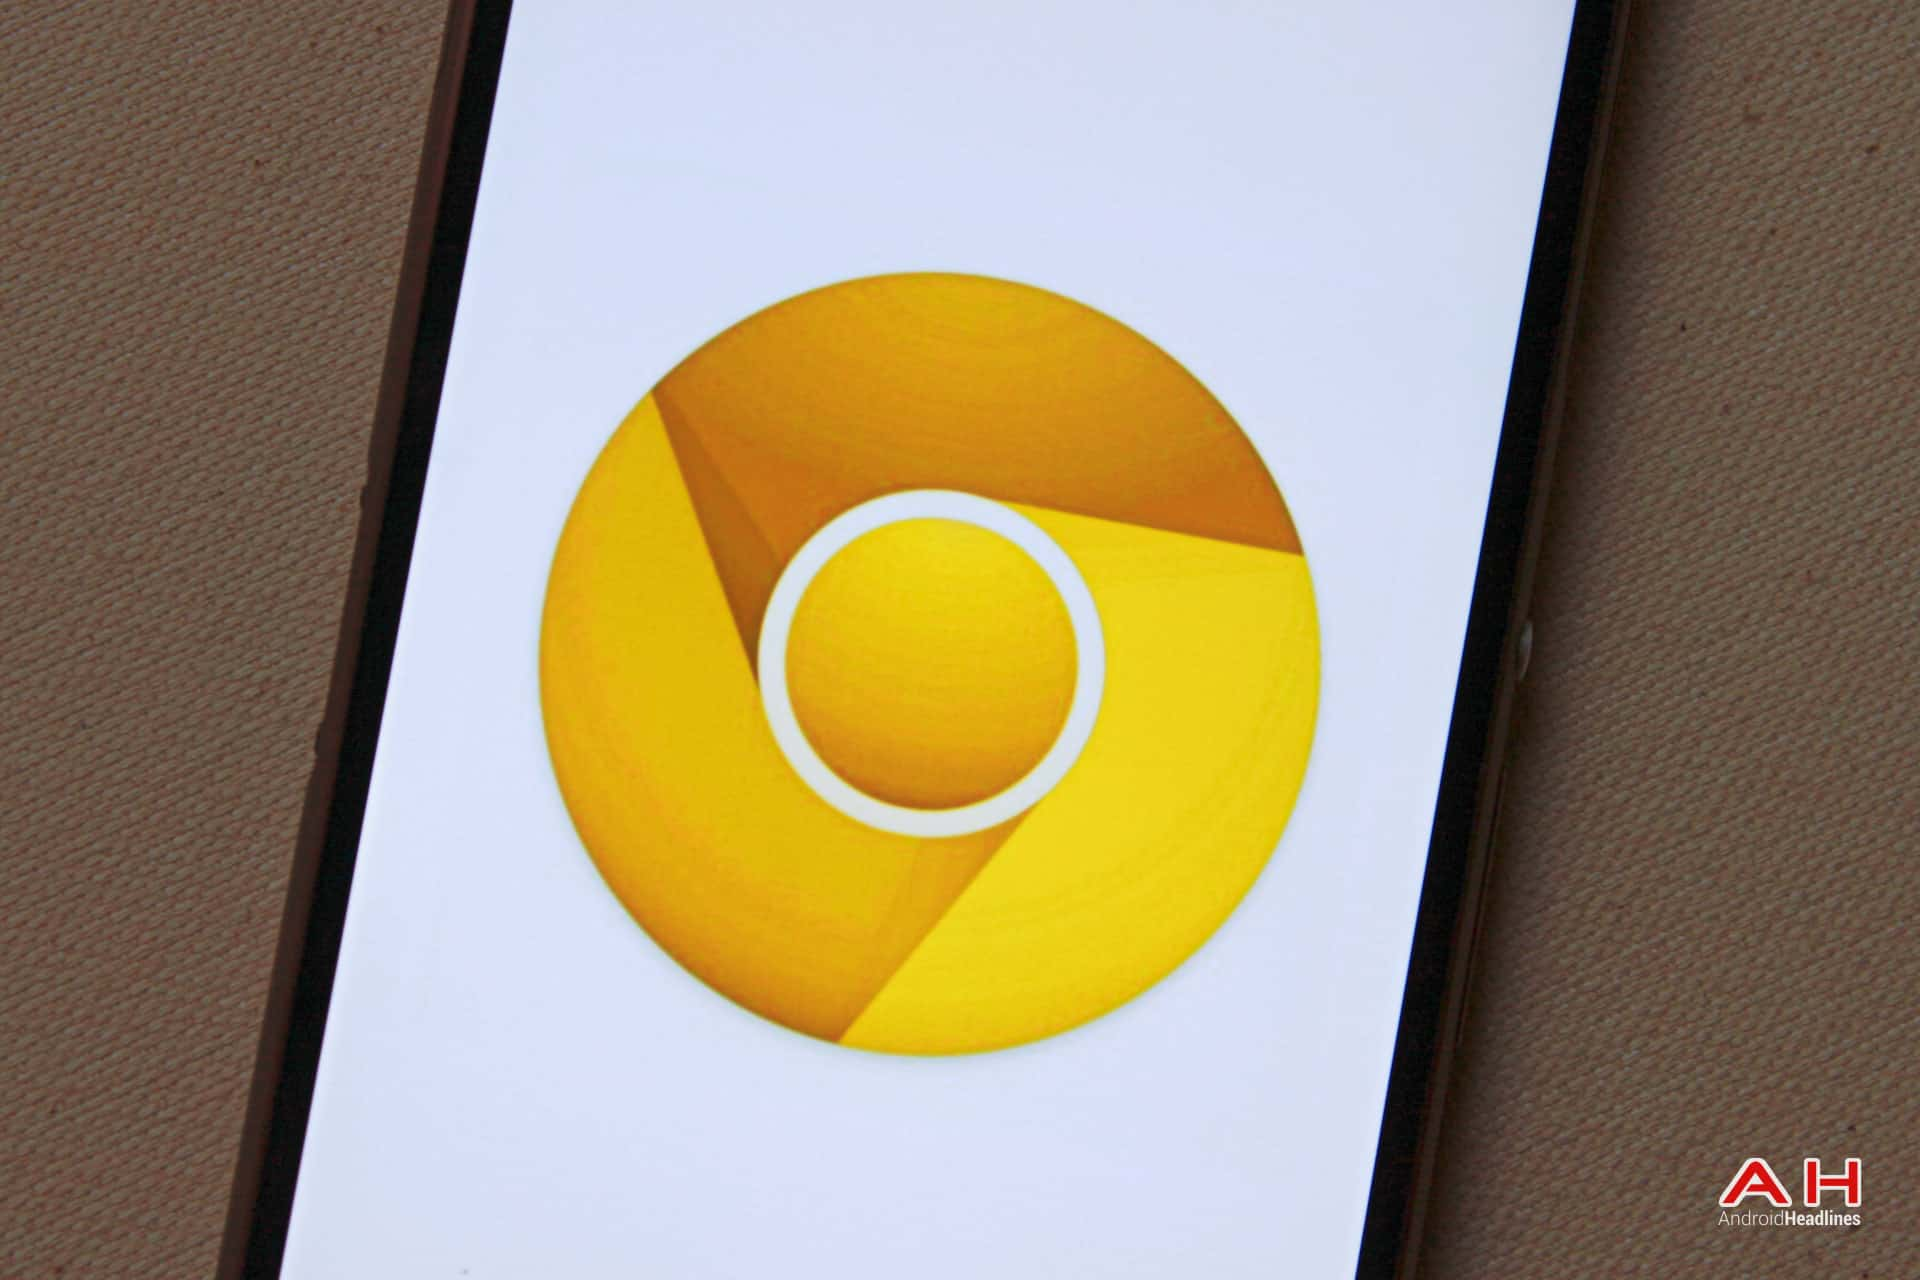 Chrome Canary Receives New Material Design 2 Changes